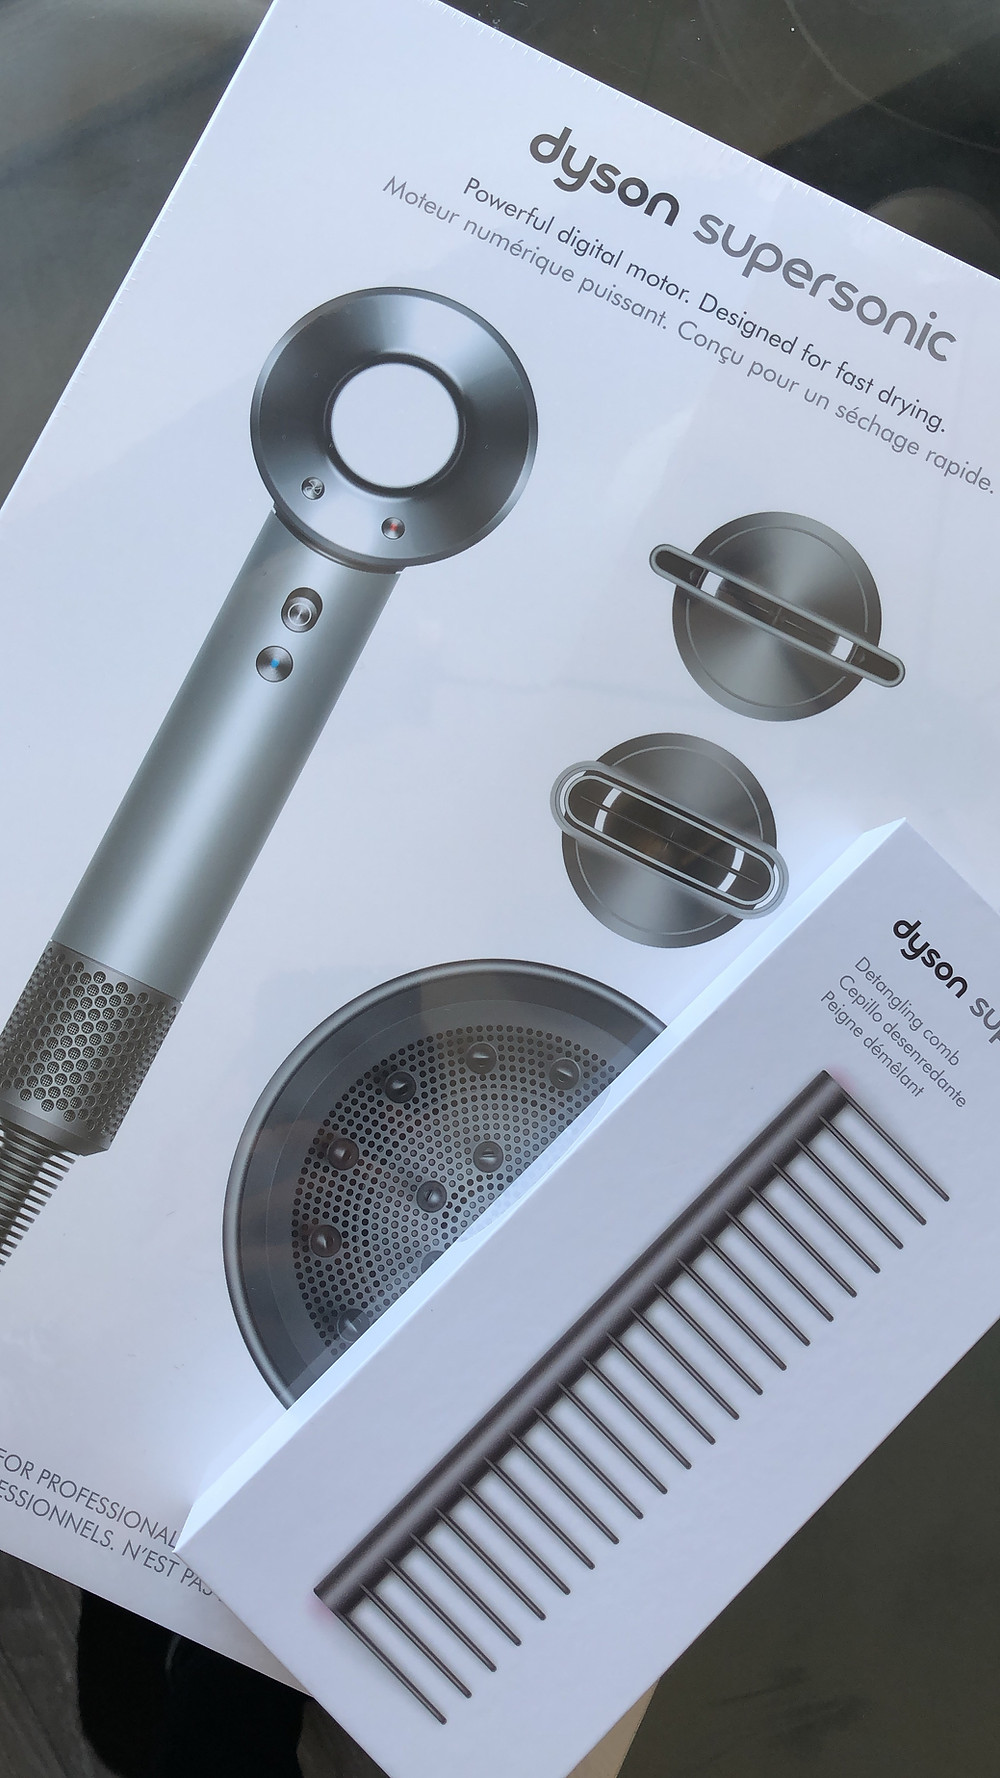 Noie Beauty: Dyson Supersonic hairdryer